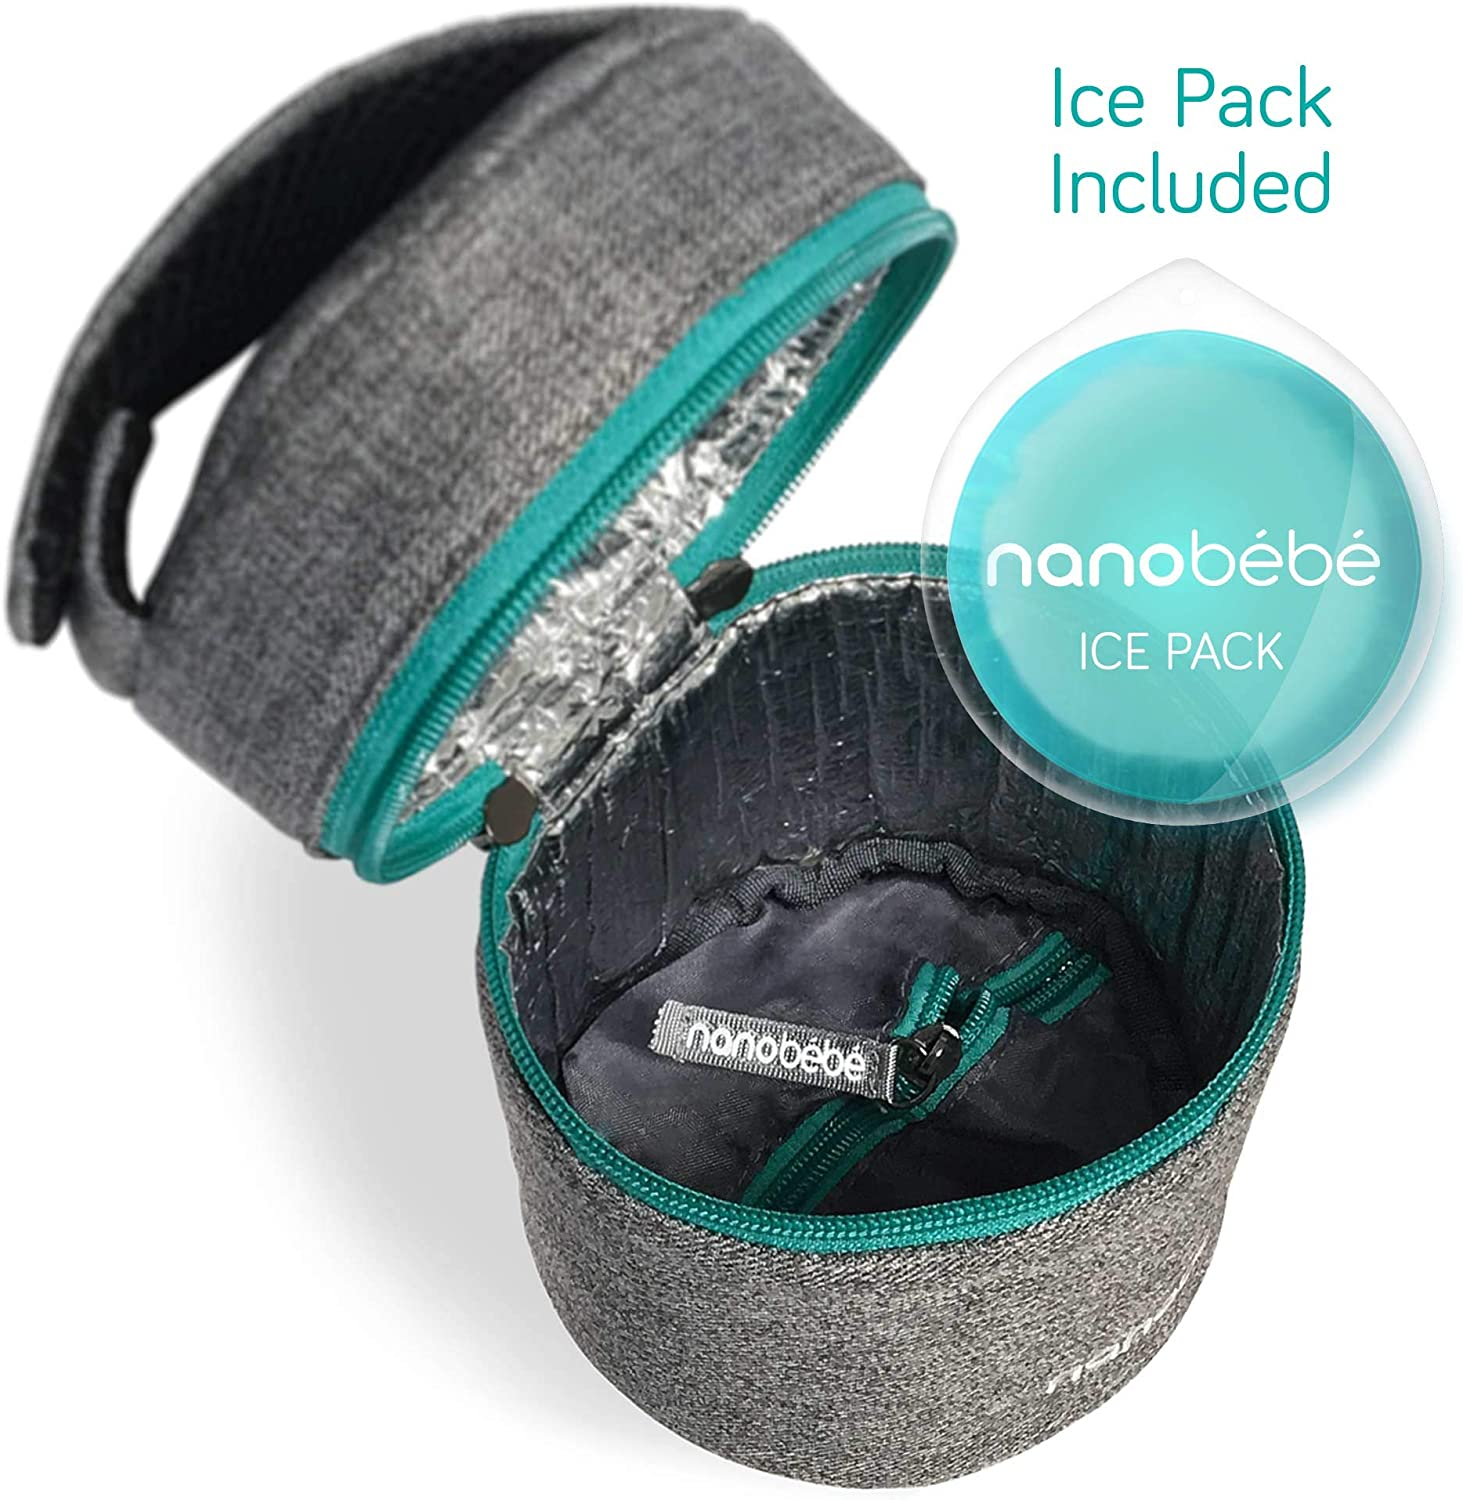 Grey Compact Triple Insulated nanobebe Breastmilk Baby Bottle Cooler /& Travel Bag with Ice Pack Included Easily attaches to Stroller or Diaper Bag